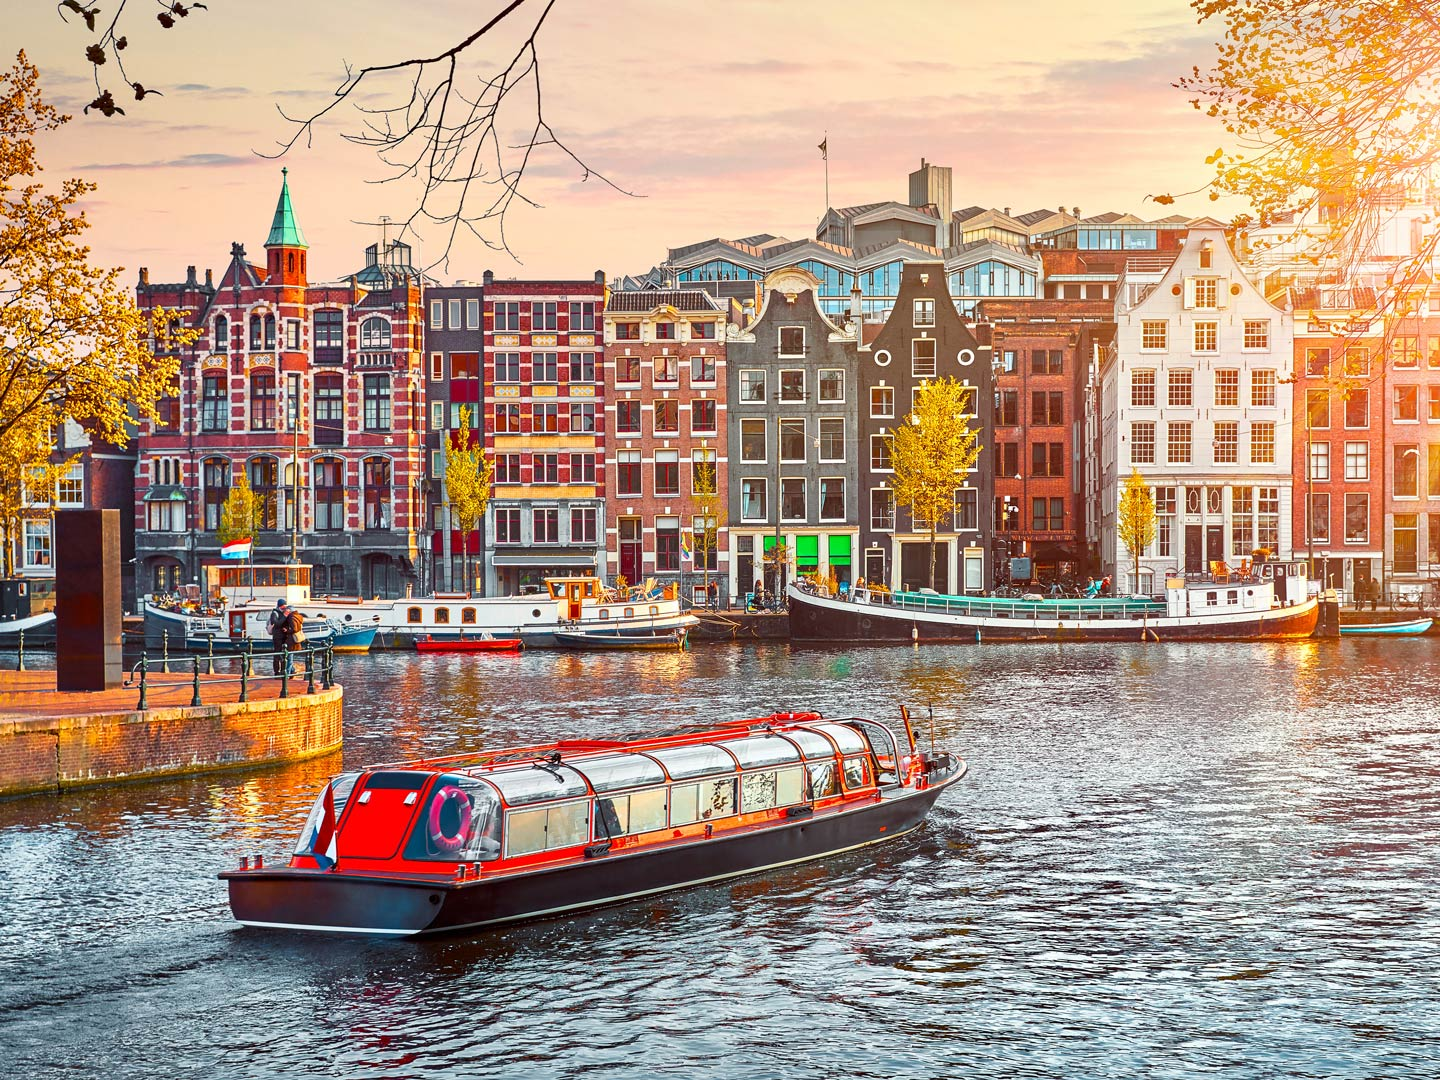 A view of the canals in Amsterdam